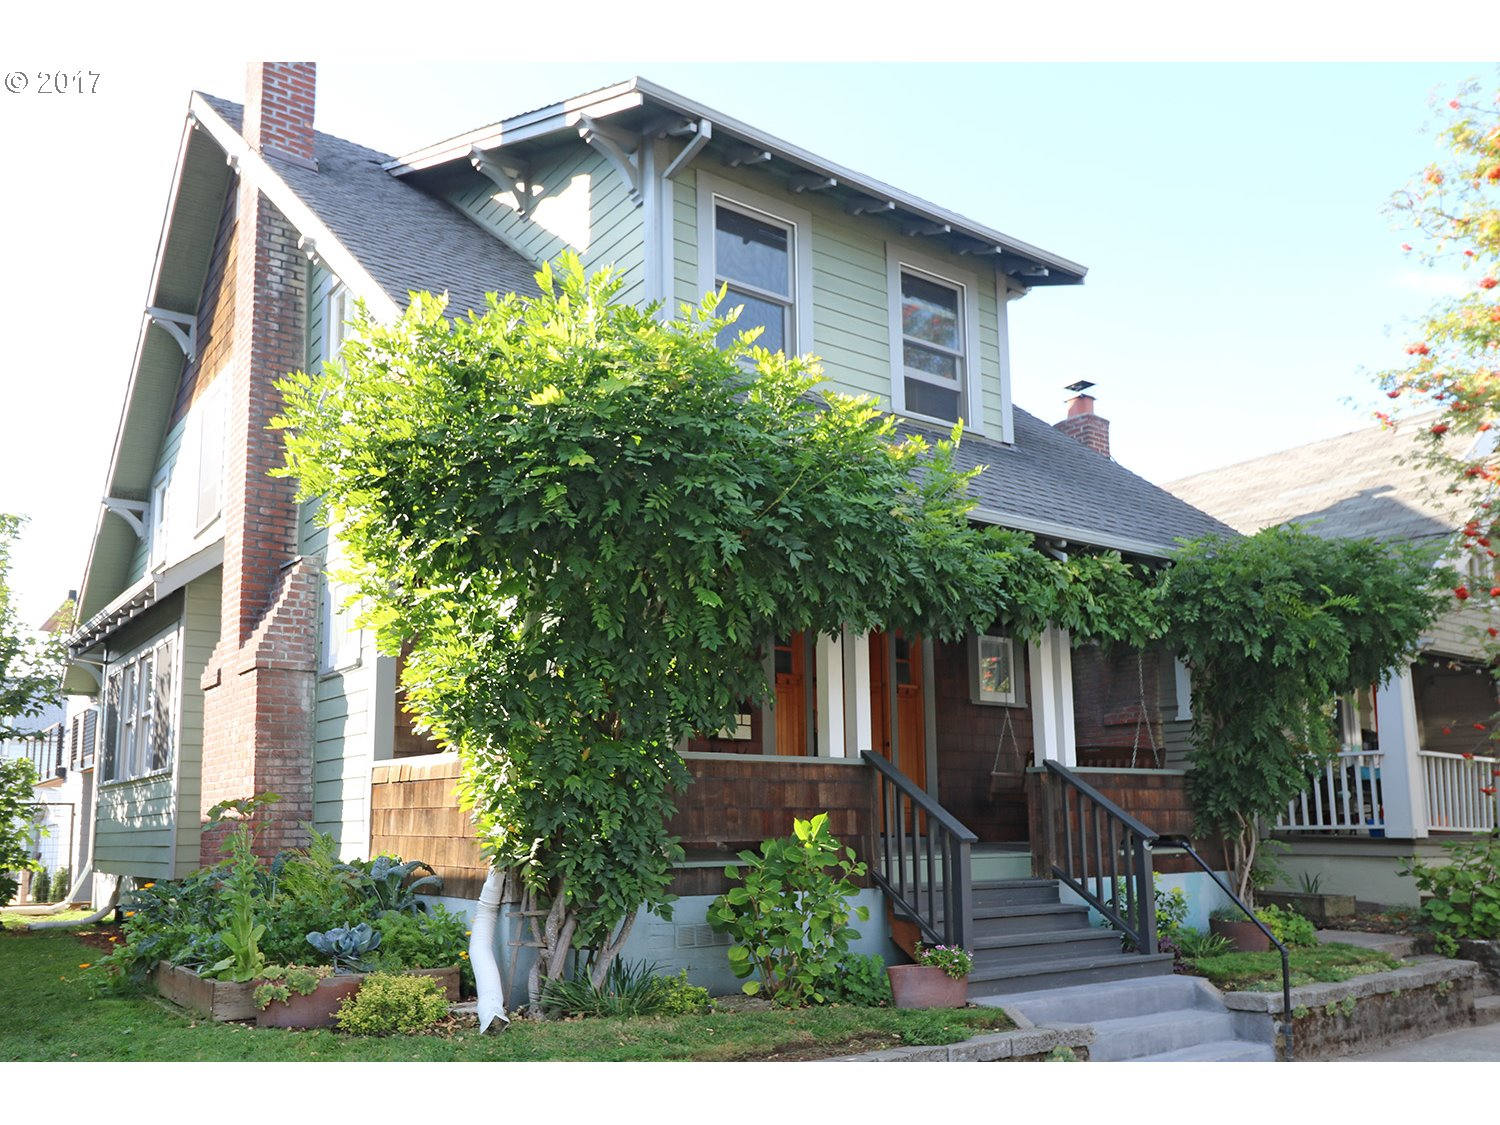 Beautiful restored Craftsman-Ideal location-Walk to shops-restaurants & New Seasons on Hawthorne. Sunny & Bright! Perfect condo Alt-No HOA-Large Kitchen w/SS Appliances-Granite-Pratt & Larson Tile-Butler Pantry. Wall of windows in DR, full bath on main + Den.3 Bdrms-Loft w/Blt-ins & bath+ WI closets. Large dbl hung windows w/view of Tabor. Huge front porch w/swing & side Veggie garden. Bonus room in basement. Walkscore 89-Bikescore 100